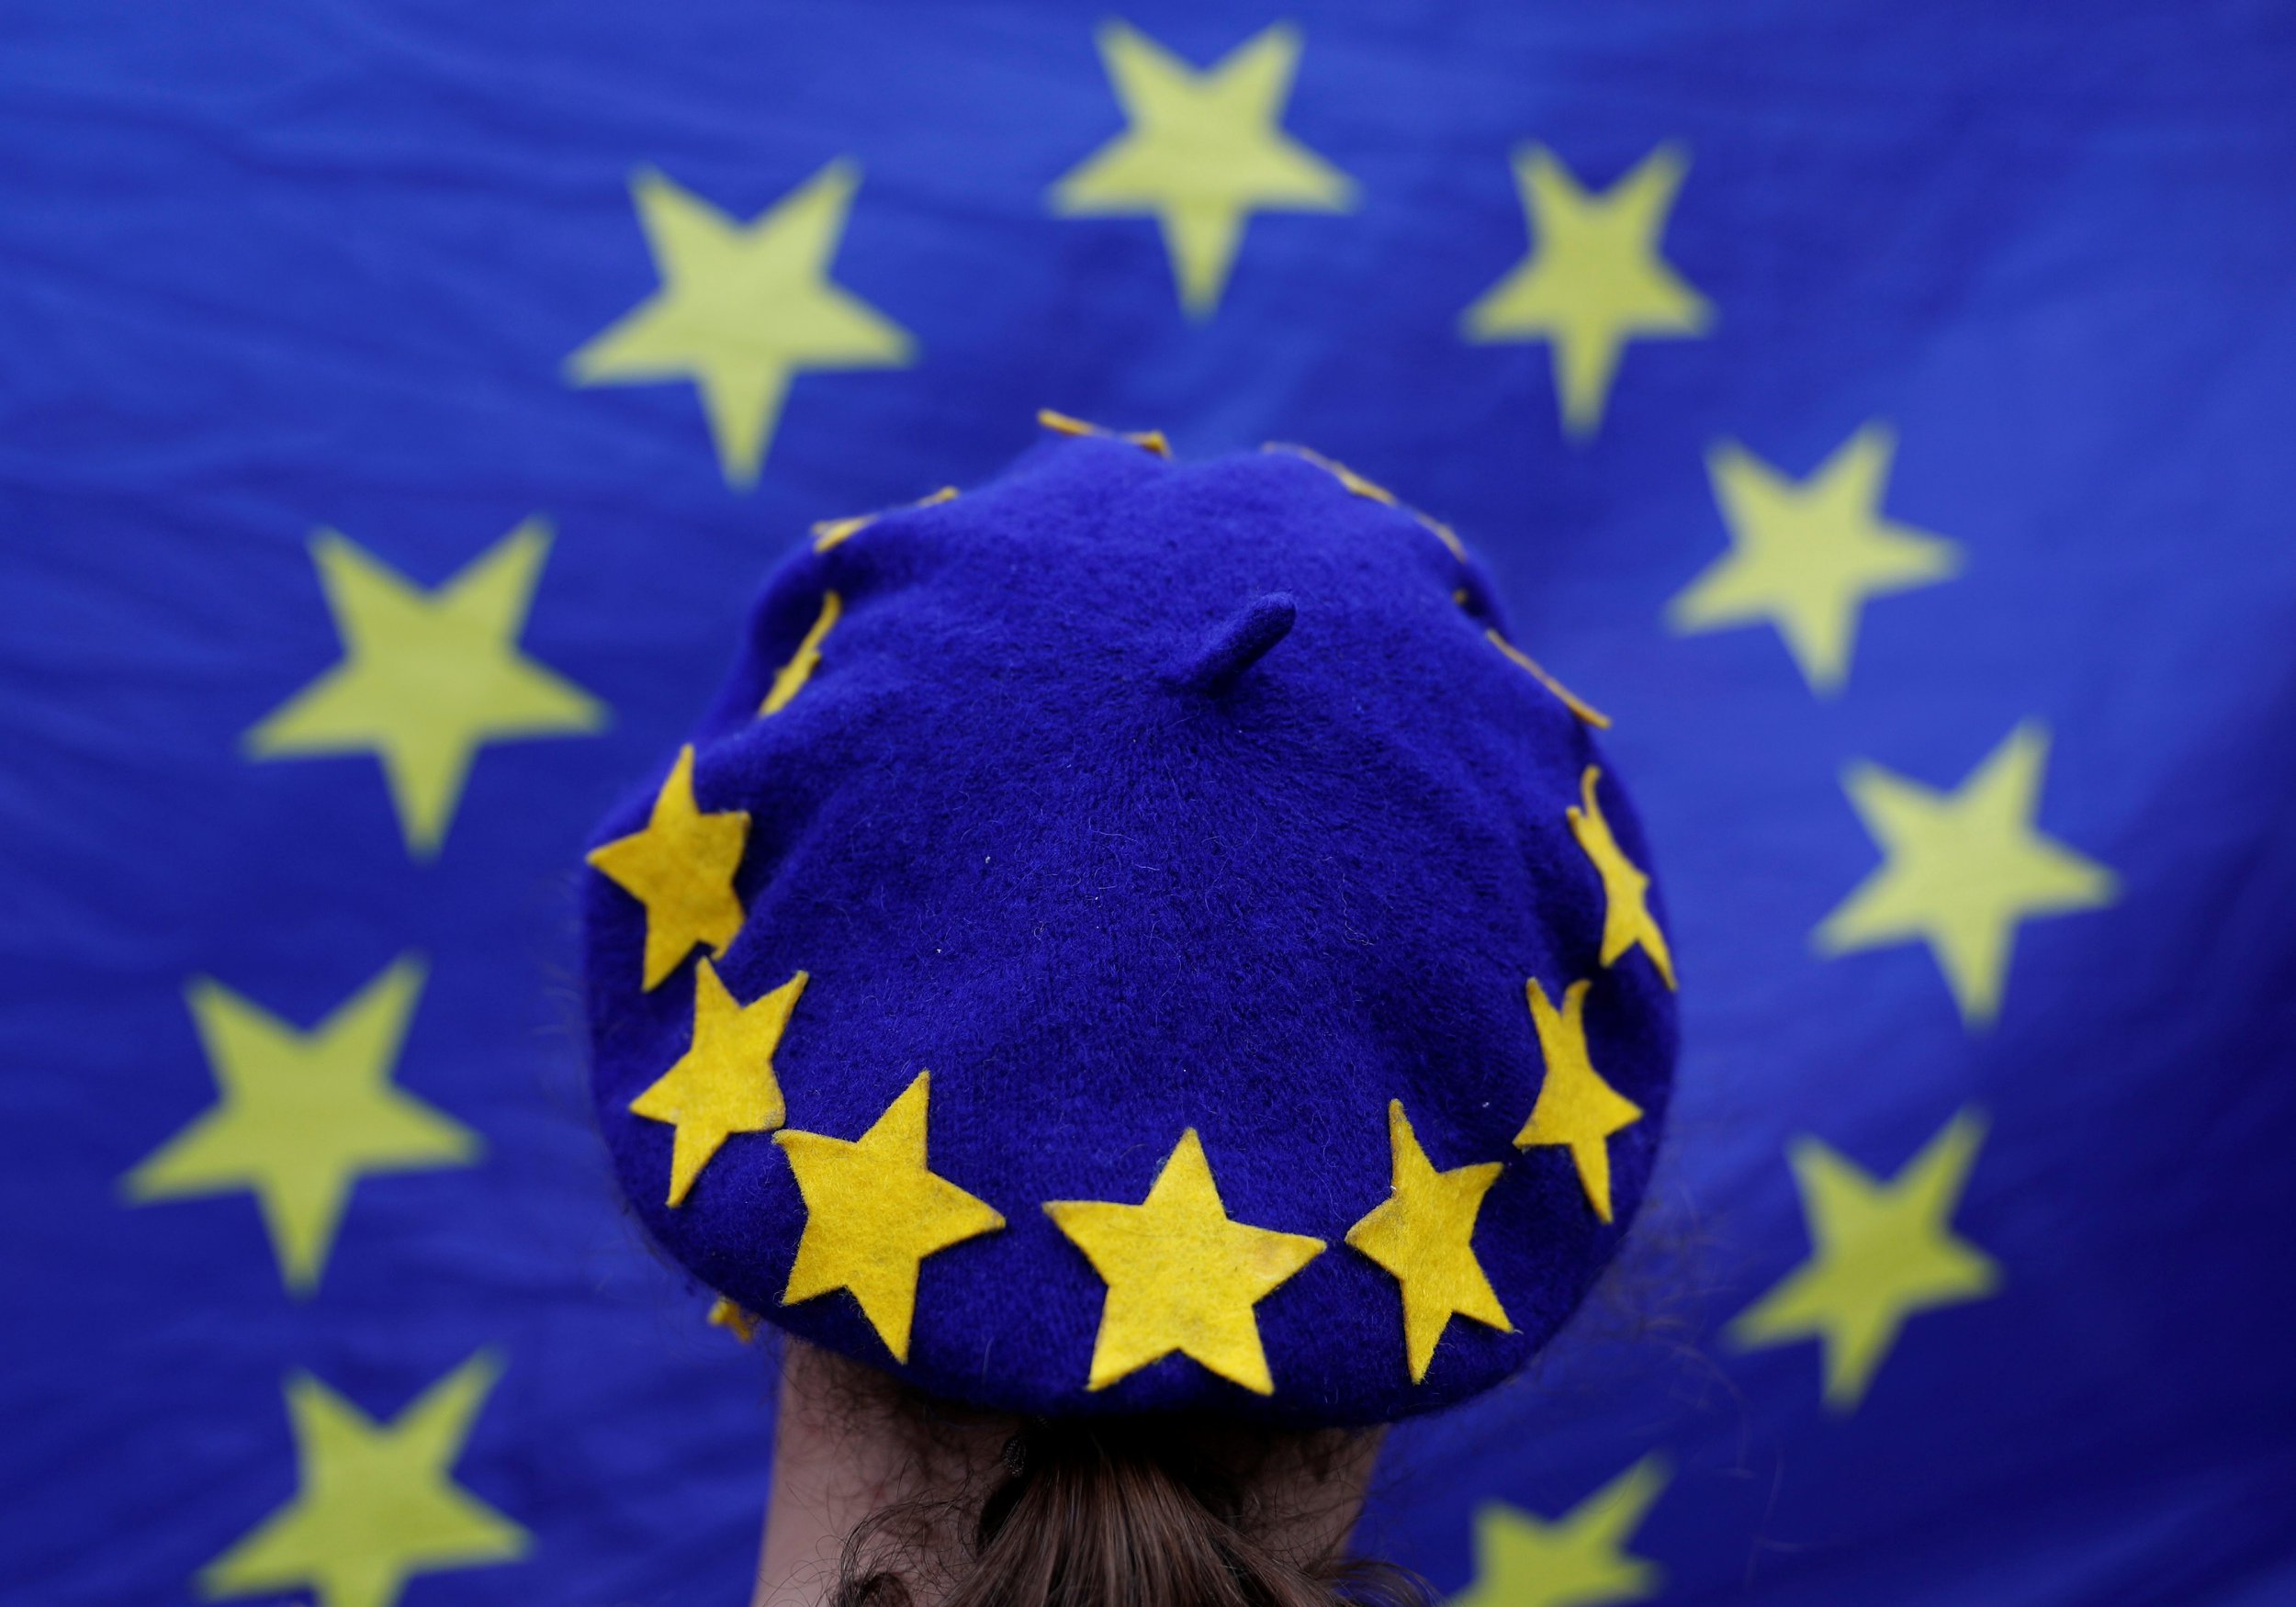 A protester wearing a Europen Union flag themed beret takes part in an anti-Brexit demonstration after Britain's Prime Minister Theresa May triggered the process by which the United Kingdom will leave the Euopean Union, in Birmingham, Britain March 29, 2017. REUTERS/Darren Staples TPX IMAGES OF THE DAY - RC15C7BF3840